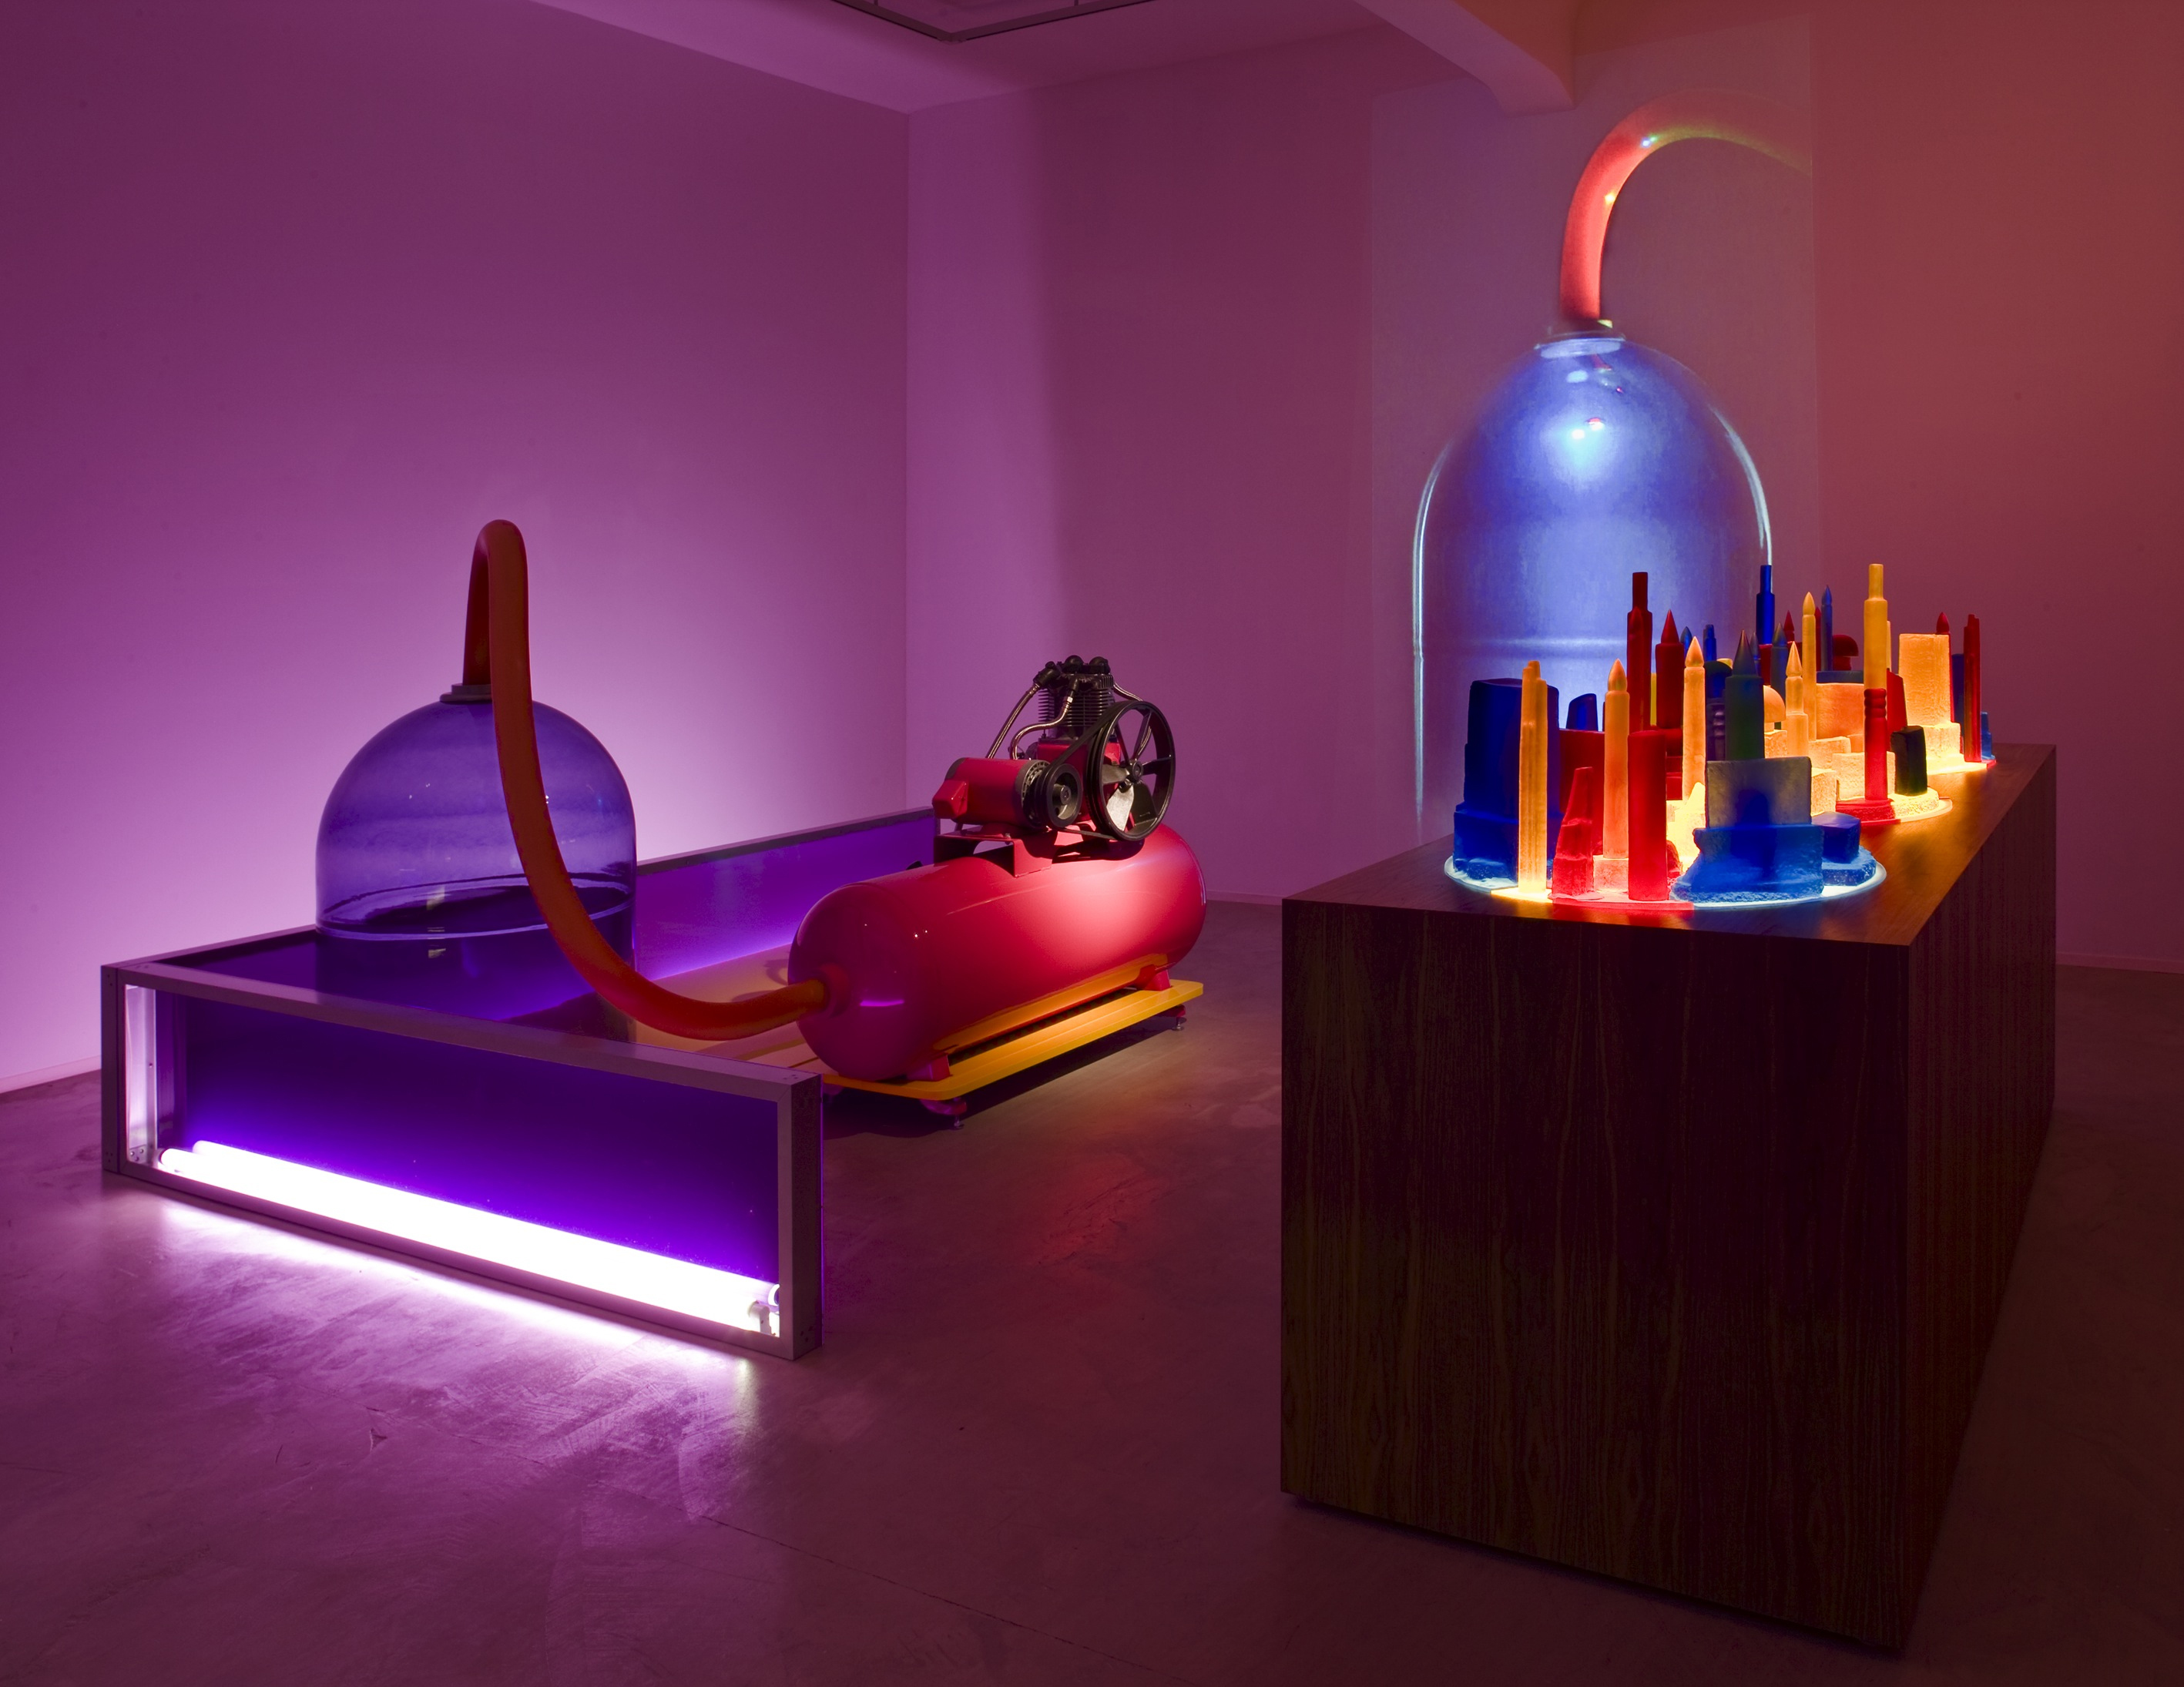 Mike Kelley, Kandor 4, 2007